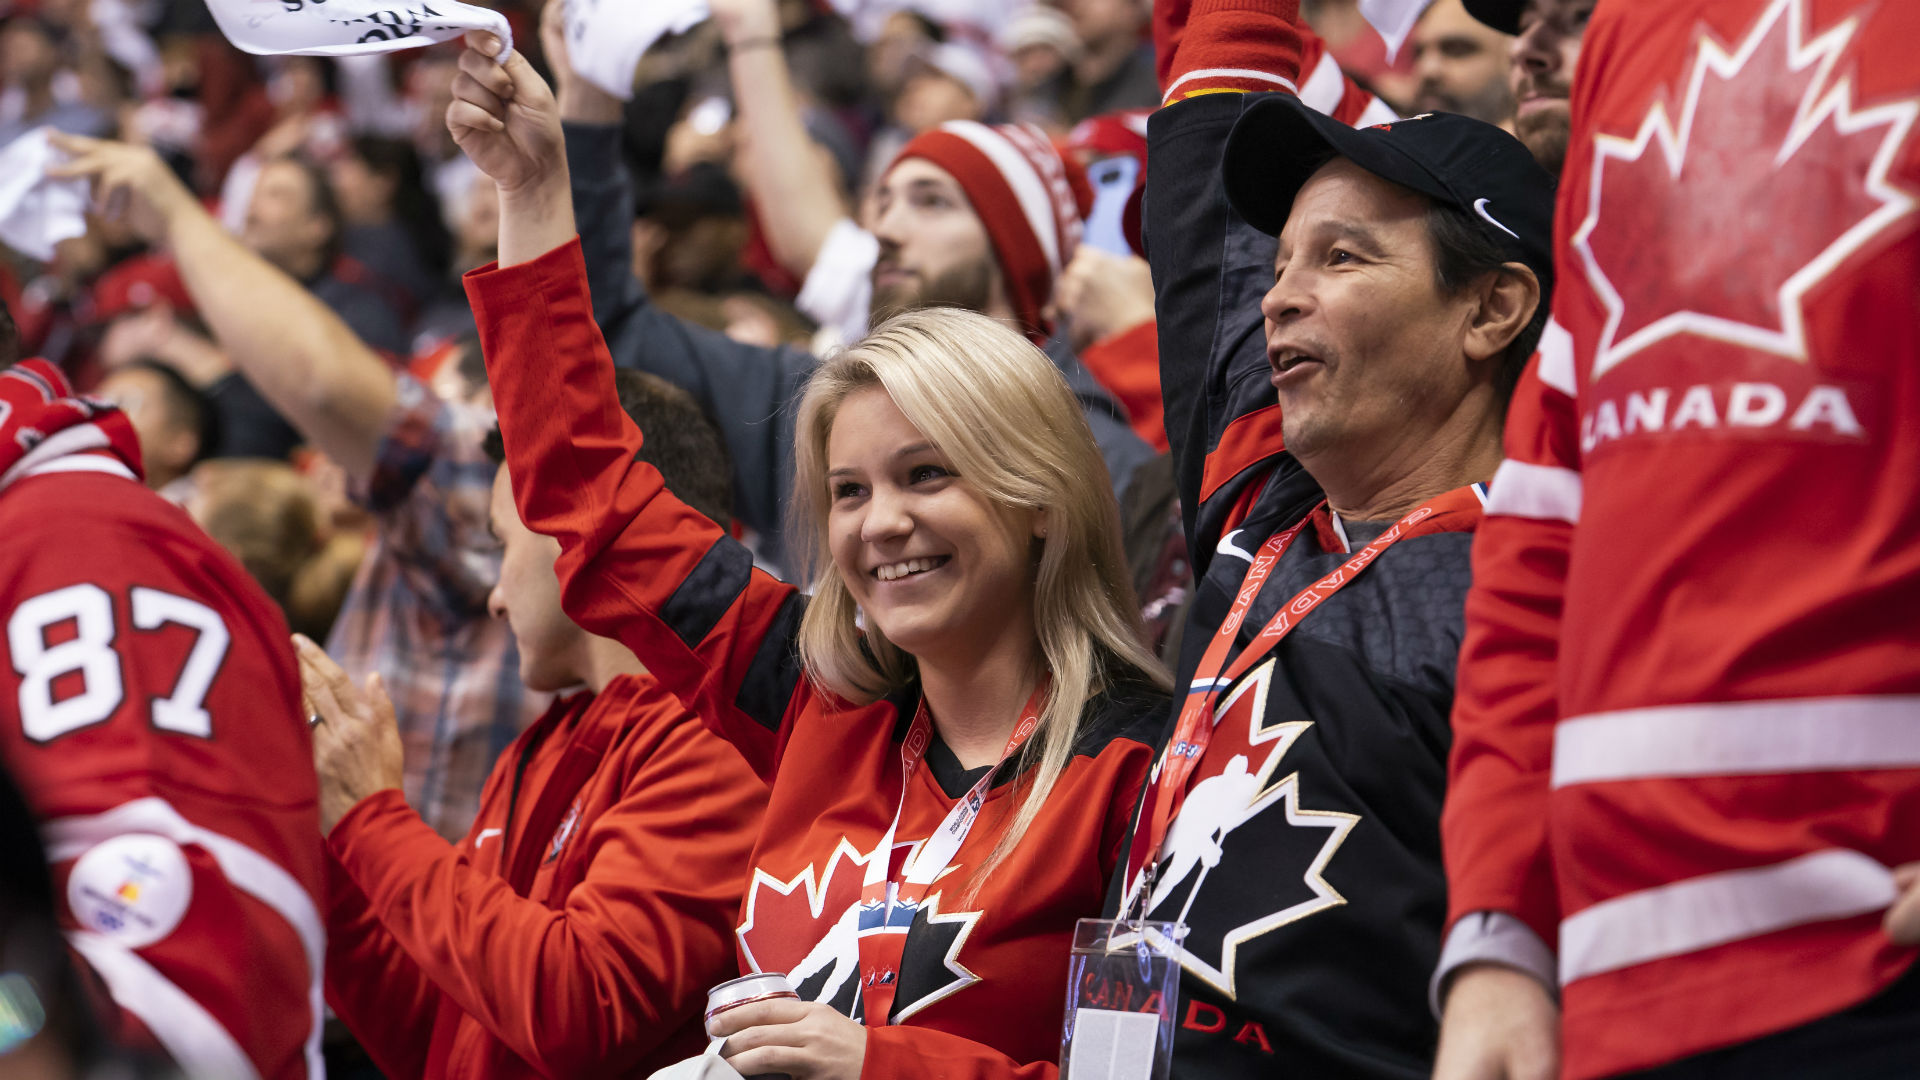 World Juniors 2021 odds: Canada favorite to win second straight gold medal